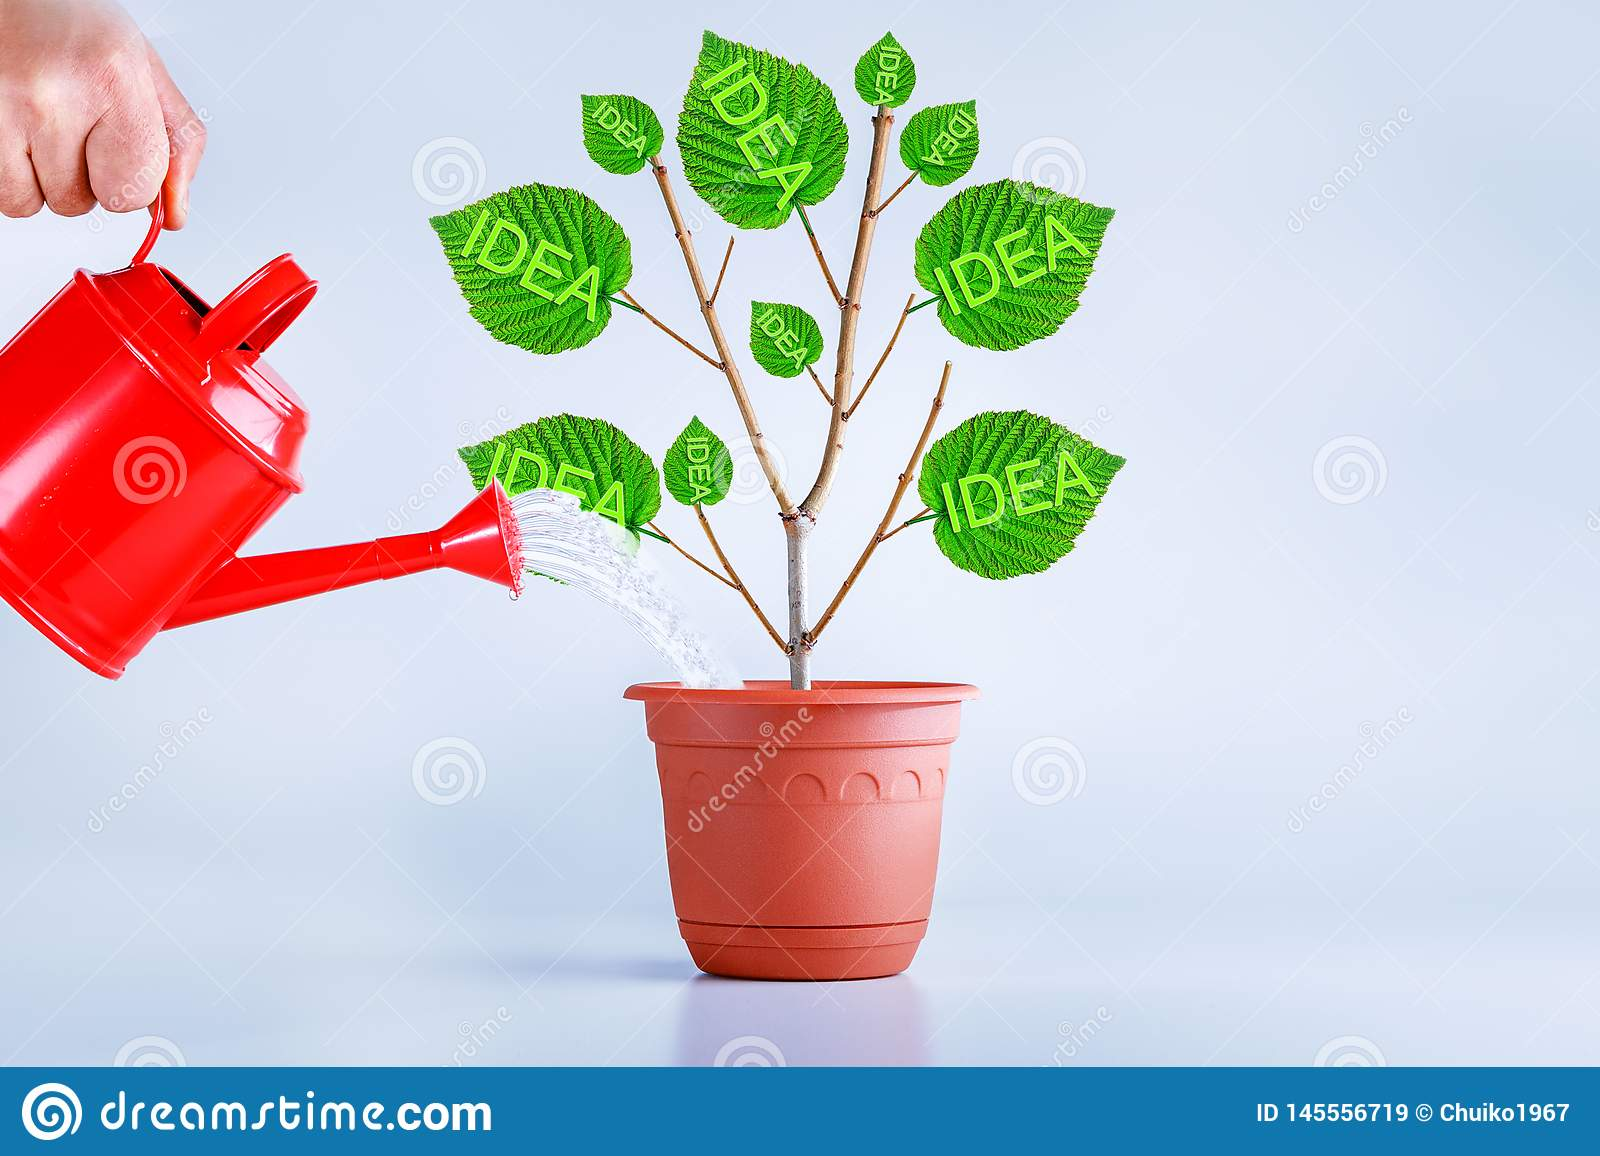 New idea creative concept. Birth, growing idea plant. Businessman growing ideas